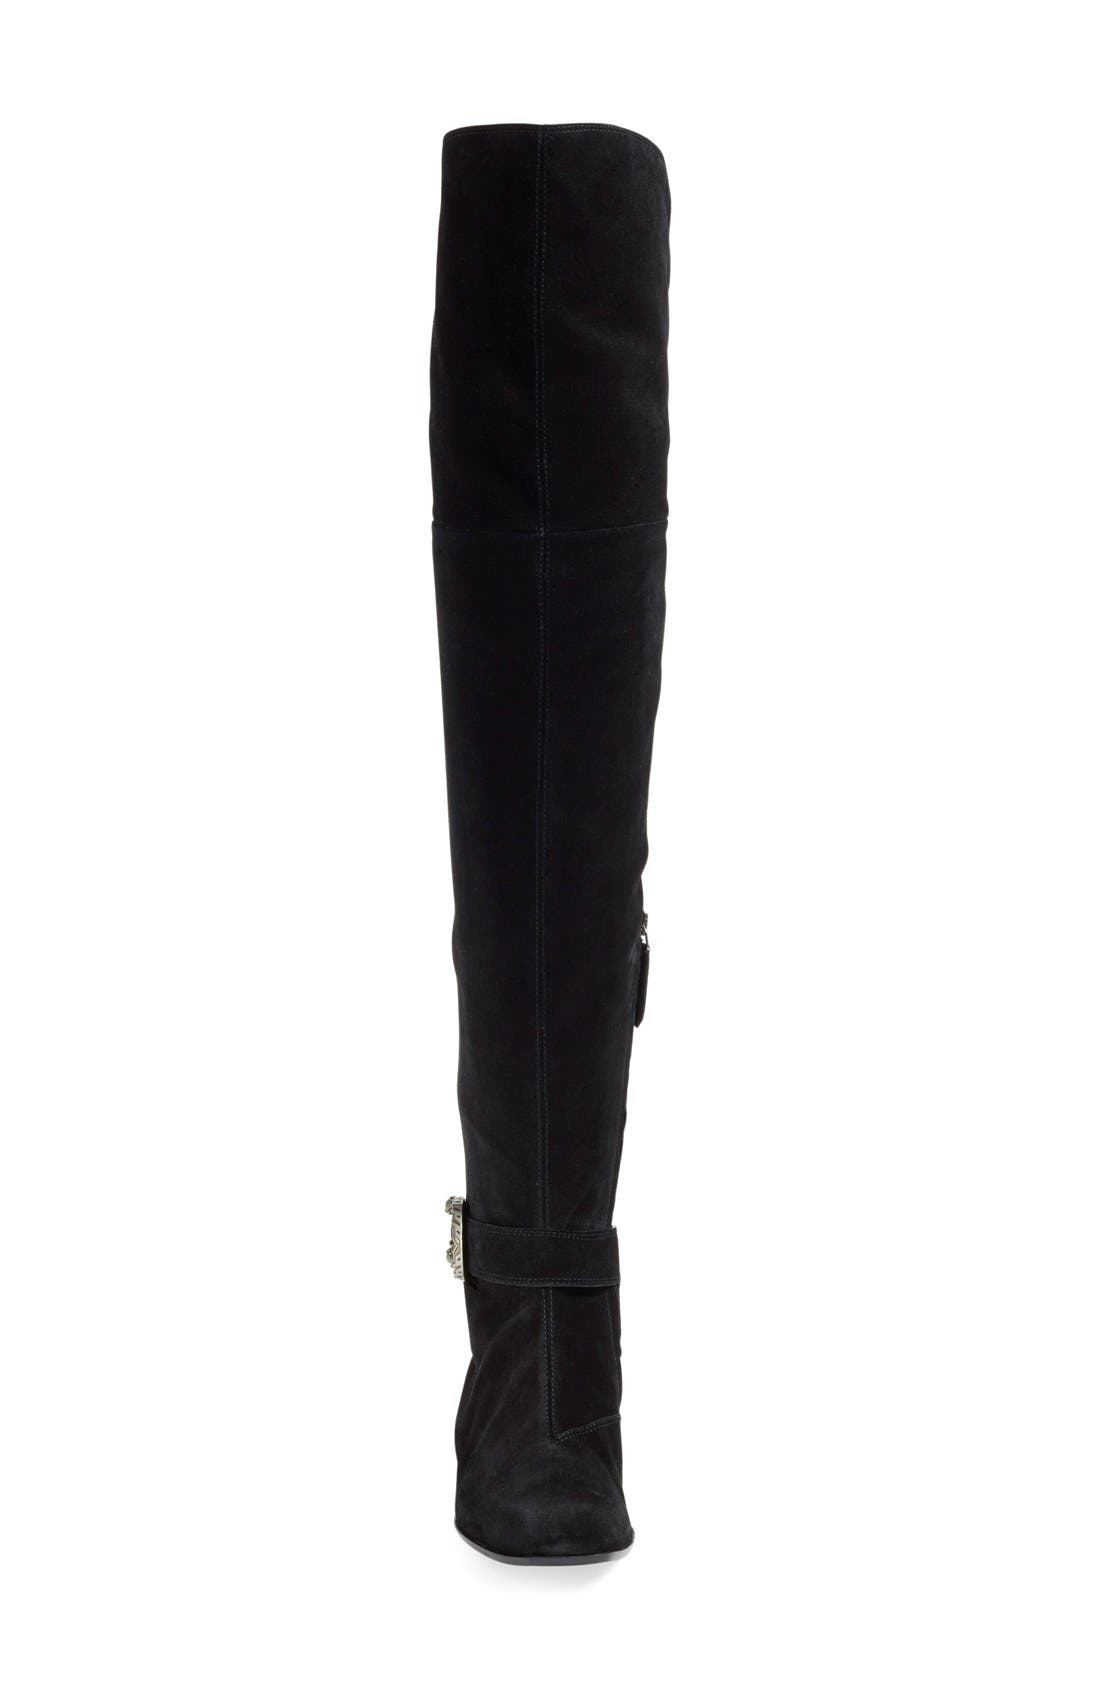 Alternate Image 3  - Gucci 'Dionysus' Over the Knee Boot (Women)